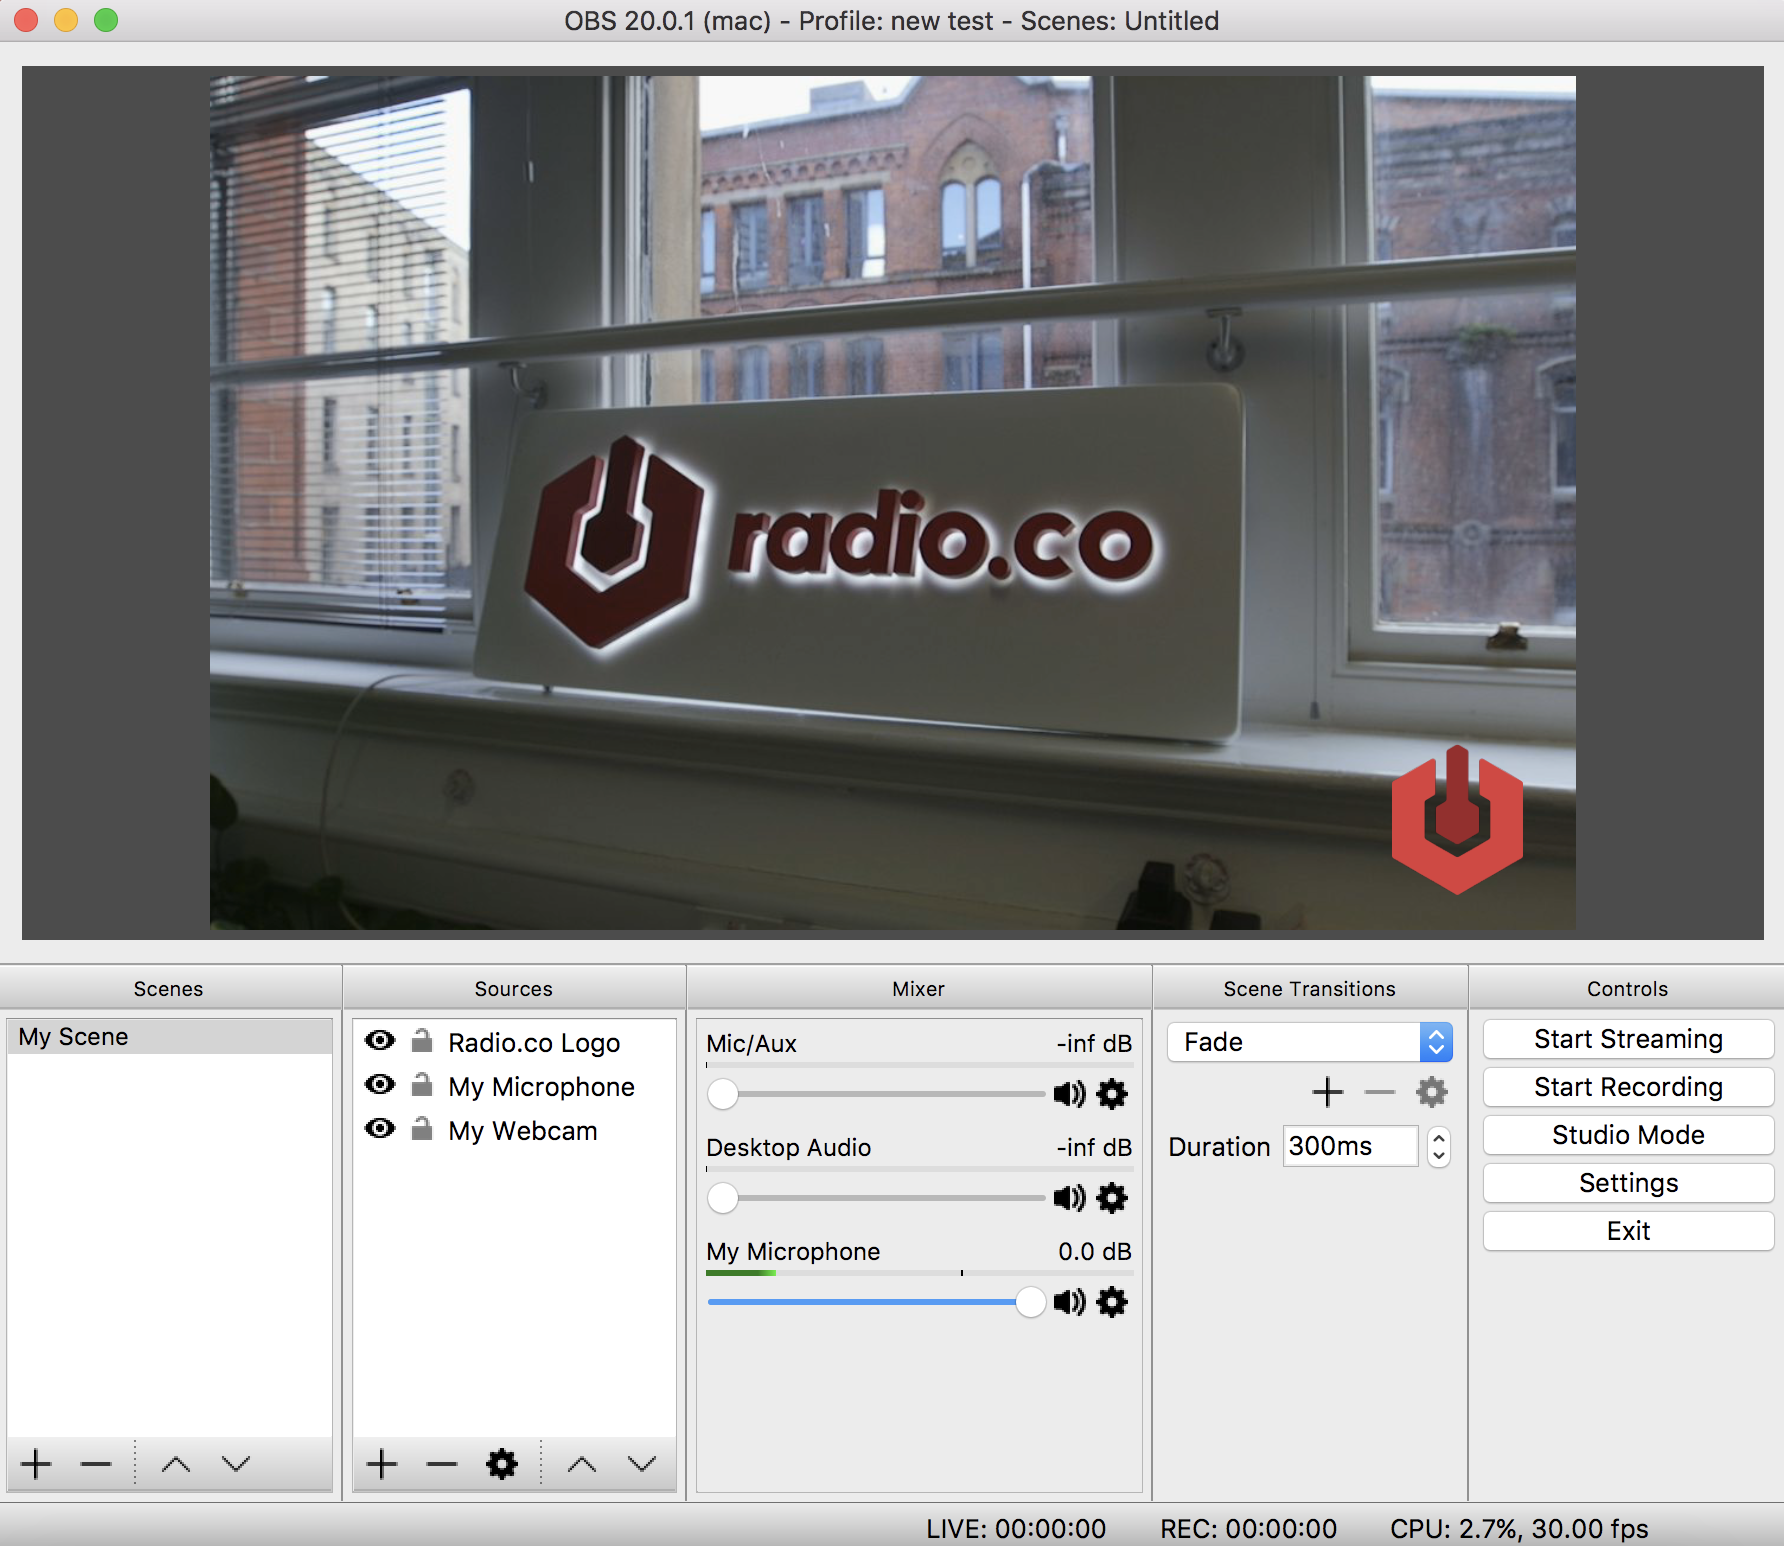 Adding a logo on screen in OBS.